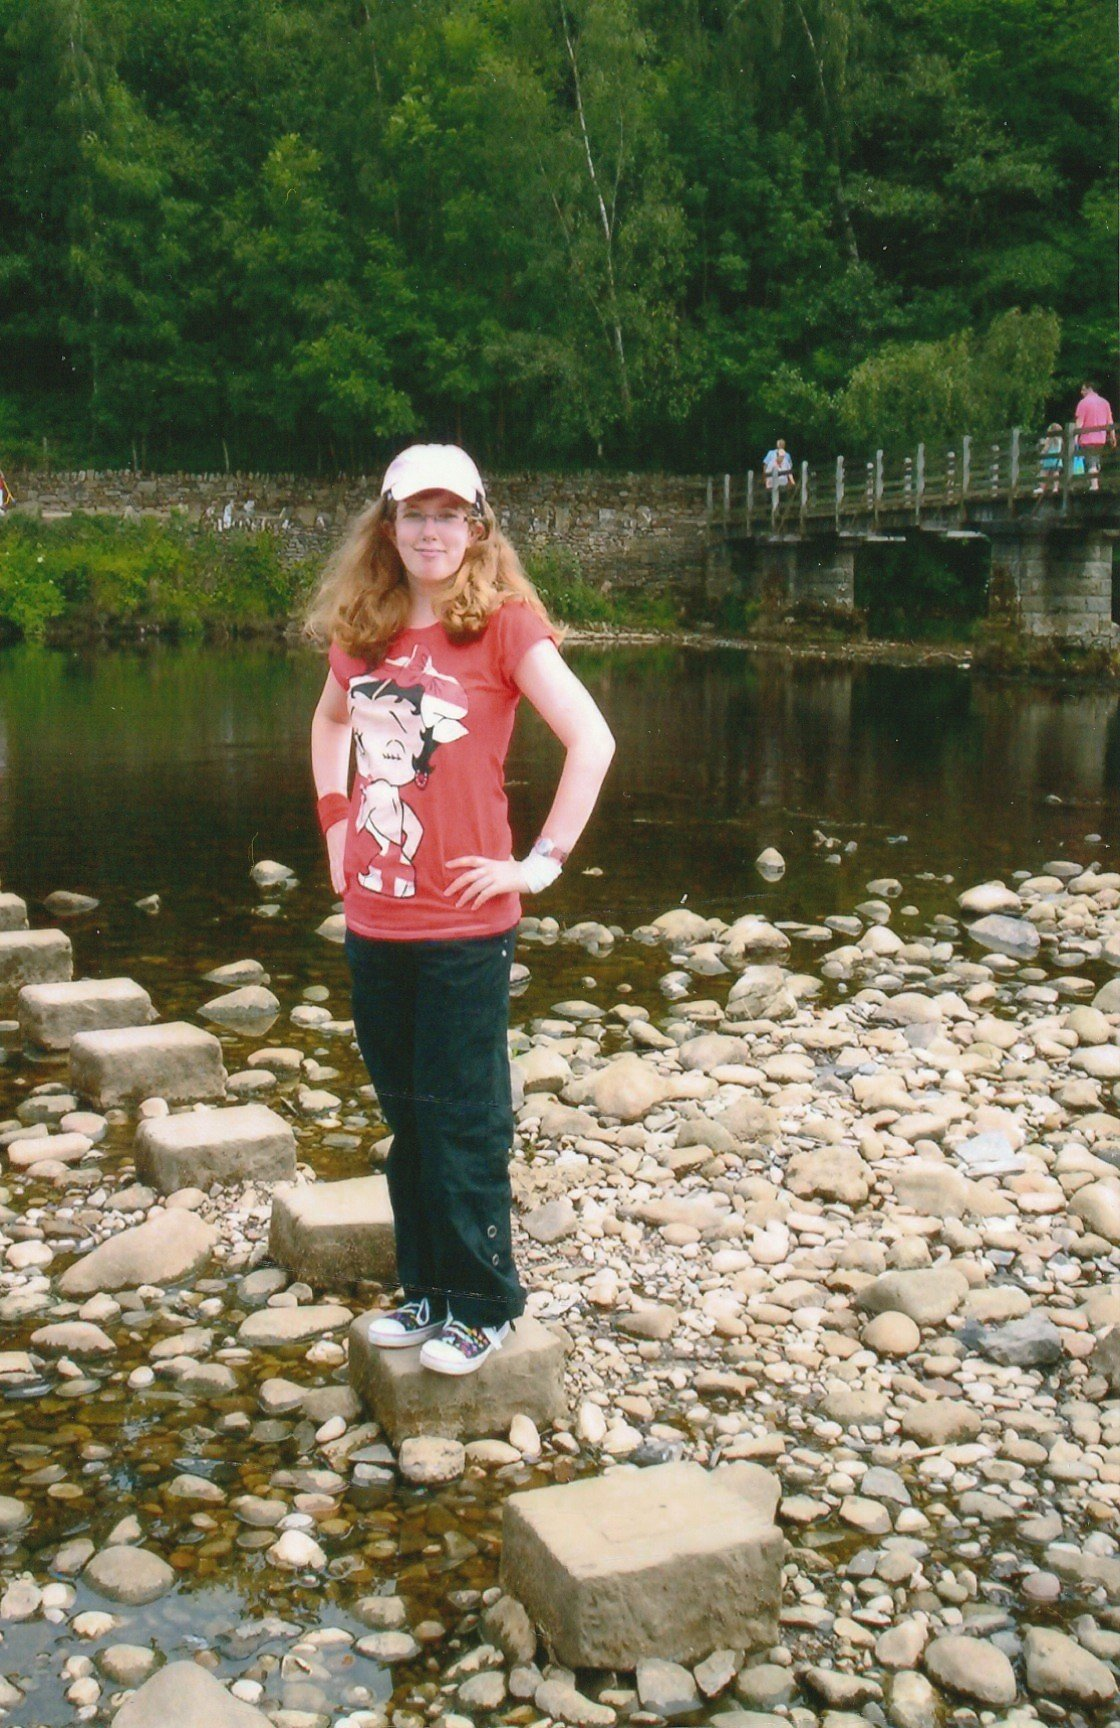 Stood on the first of the stepping stones to cross the river by Bolton Abbey. The 2010 world cup was on at the time, so I'm sporting a Betty Boop England t-shirt with my black cargo pants & converse. My blonde hair is loose & unruly as ever.